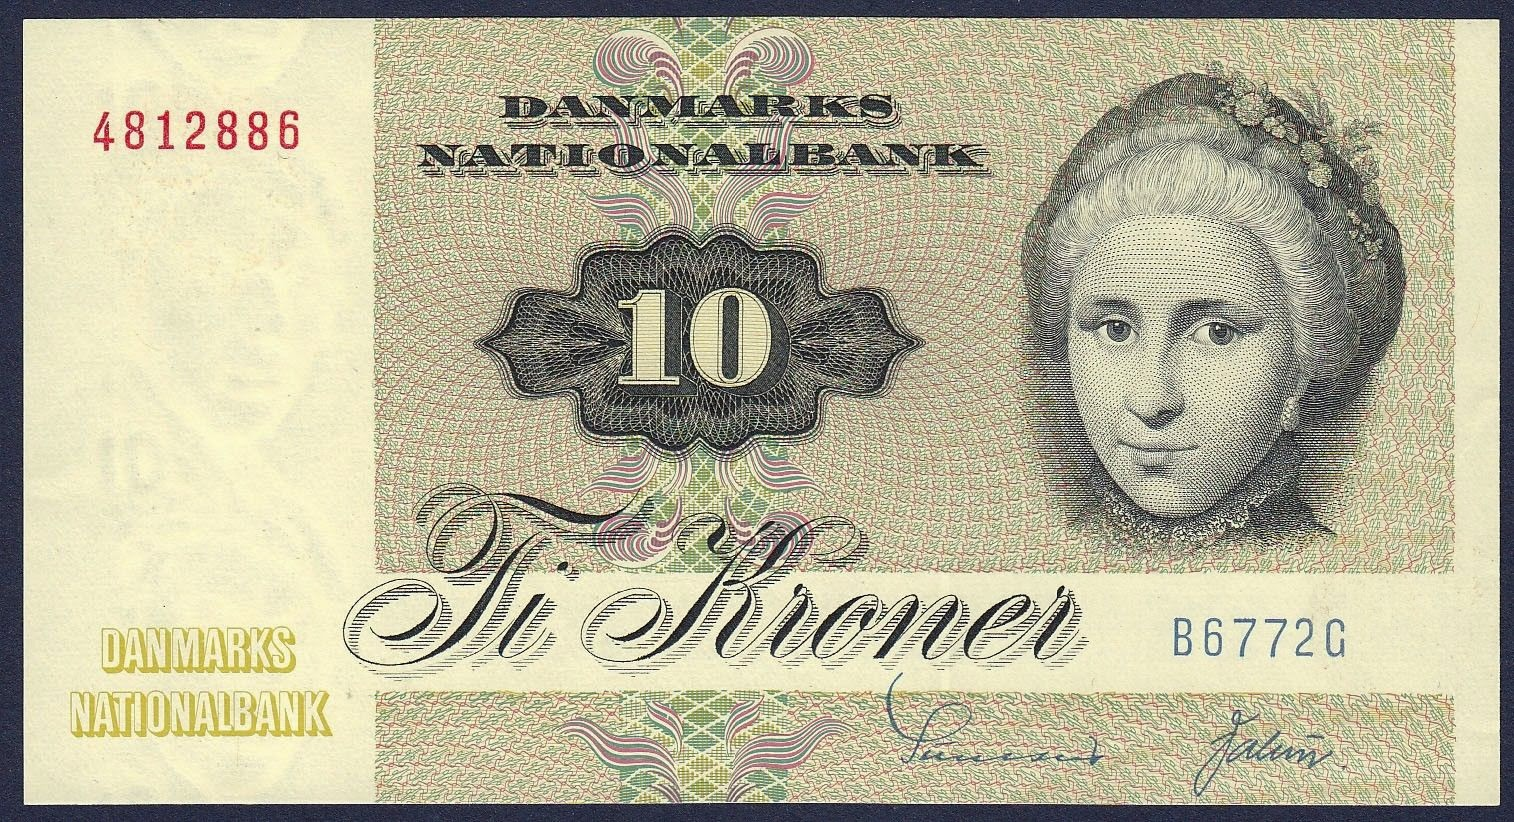 Banknotes of Denmark 10 krone banknote 1972 Cathrine Sophie Kirchhoff